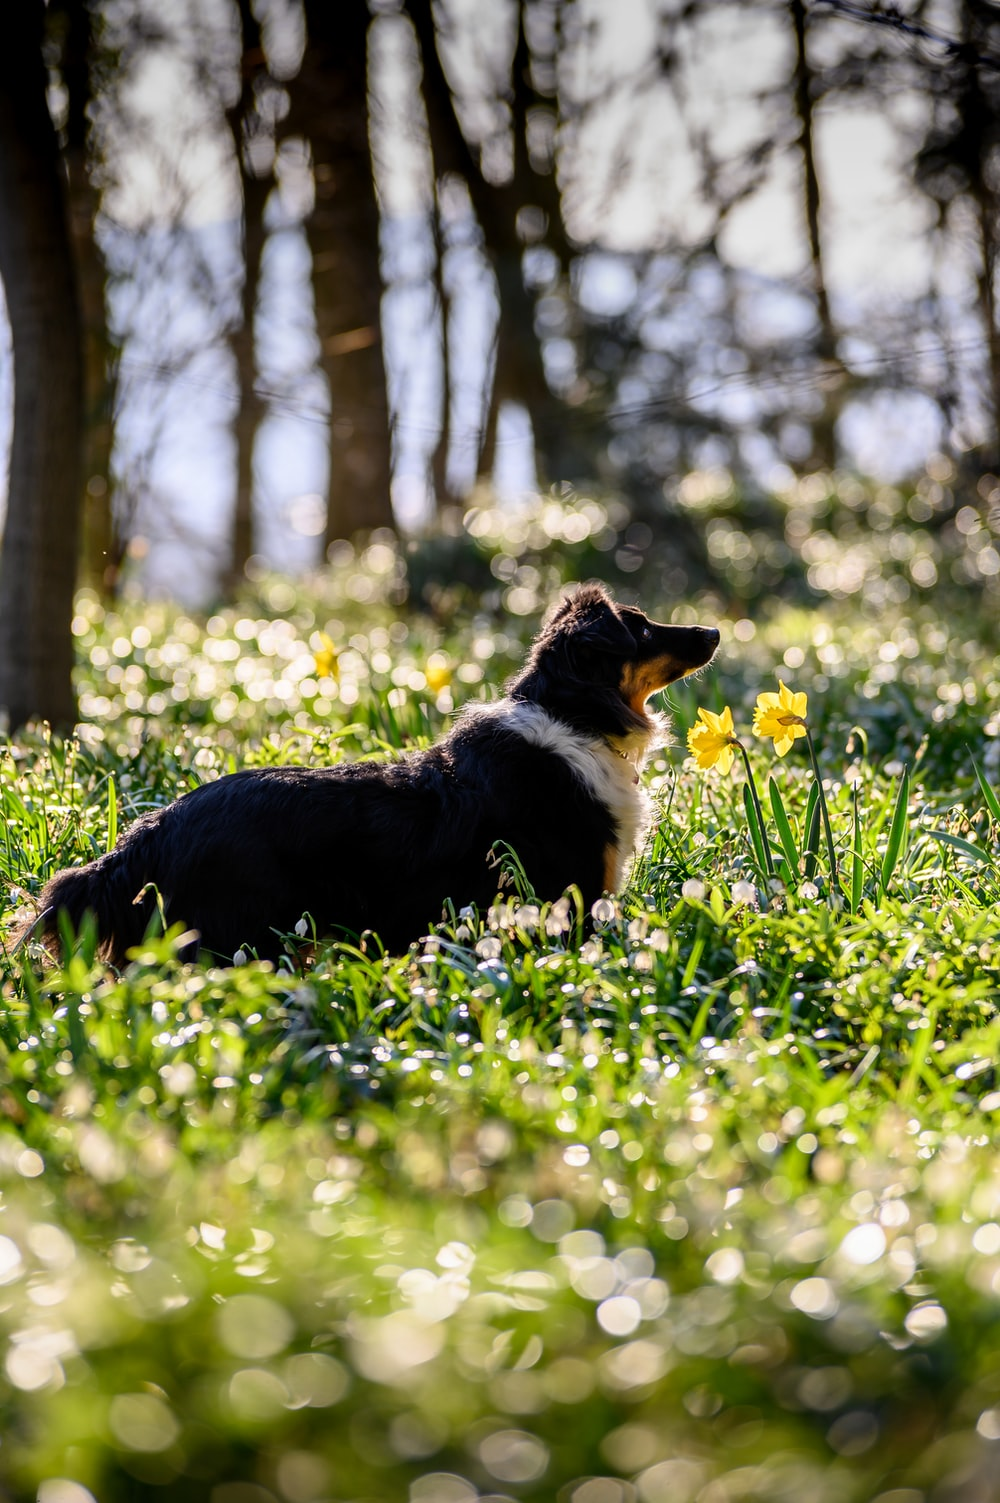 black white and brown short coated dog on green grass field during daytime